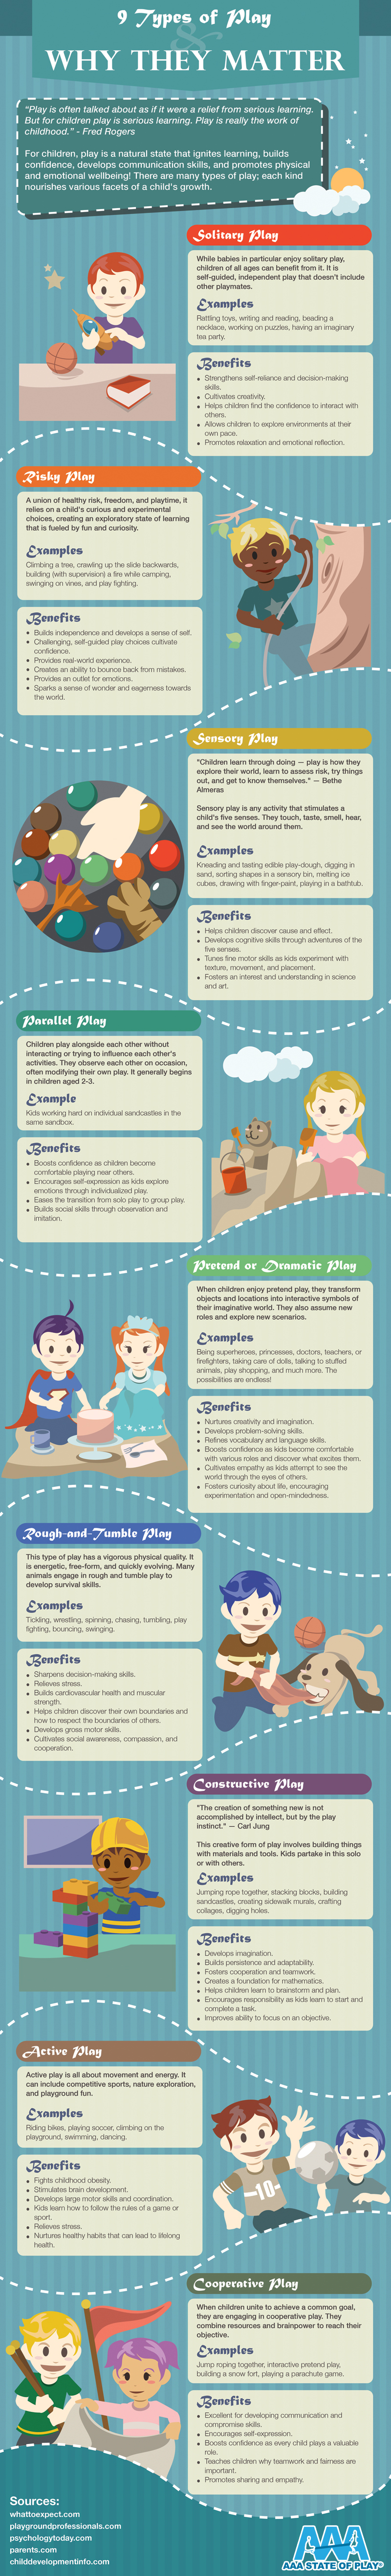 9 Types of Play and Why They Matter - AAAStateofPlay.com - Infographic